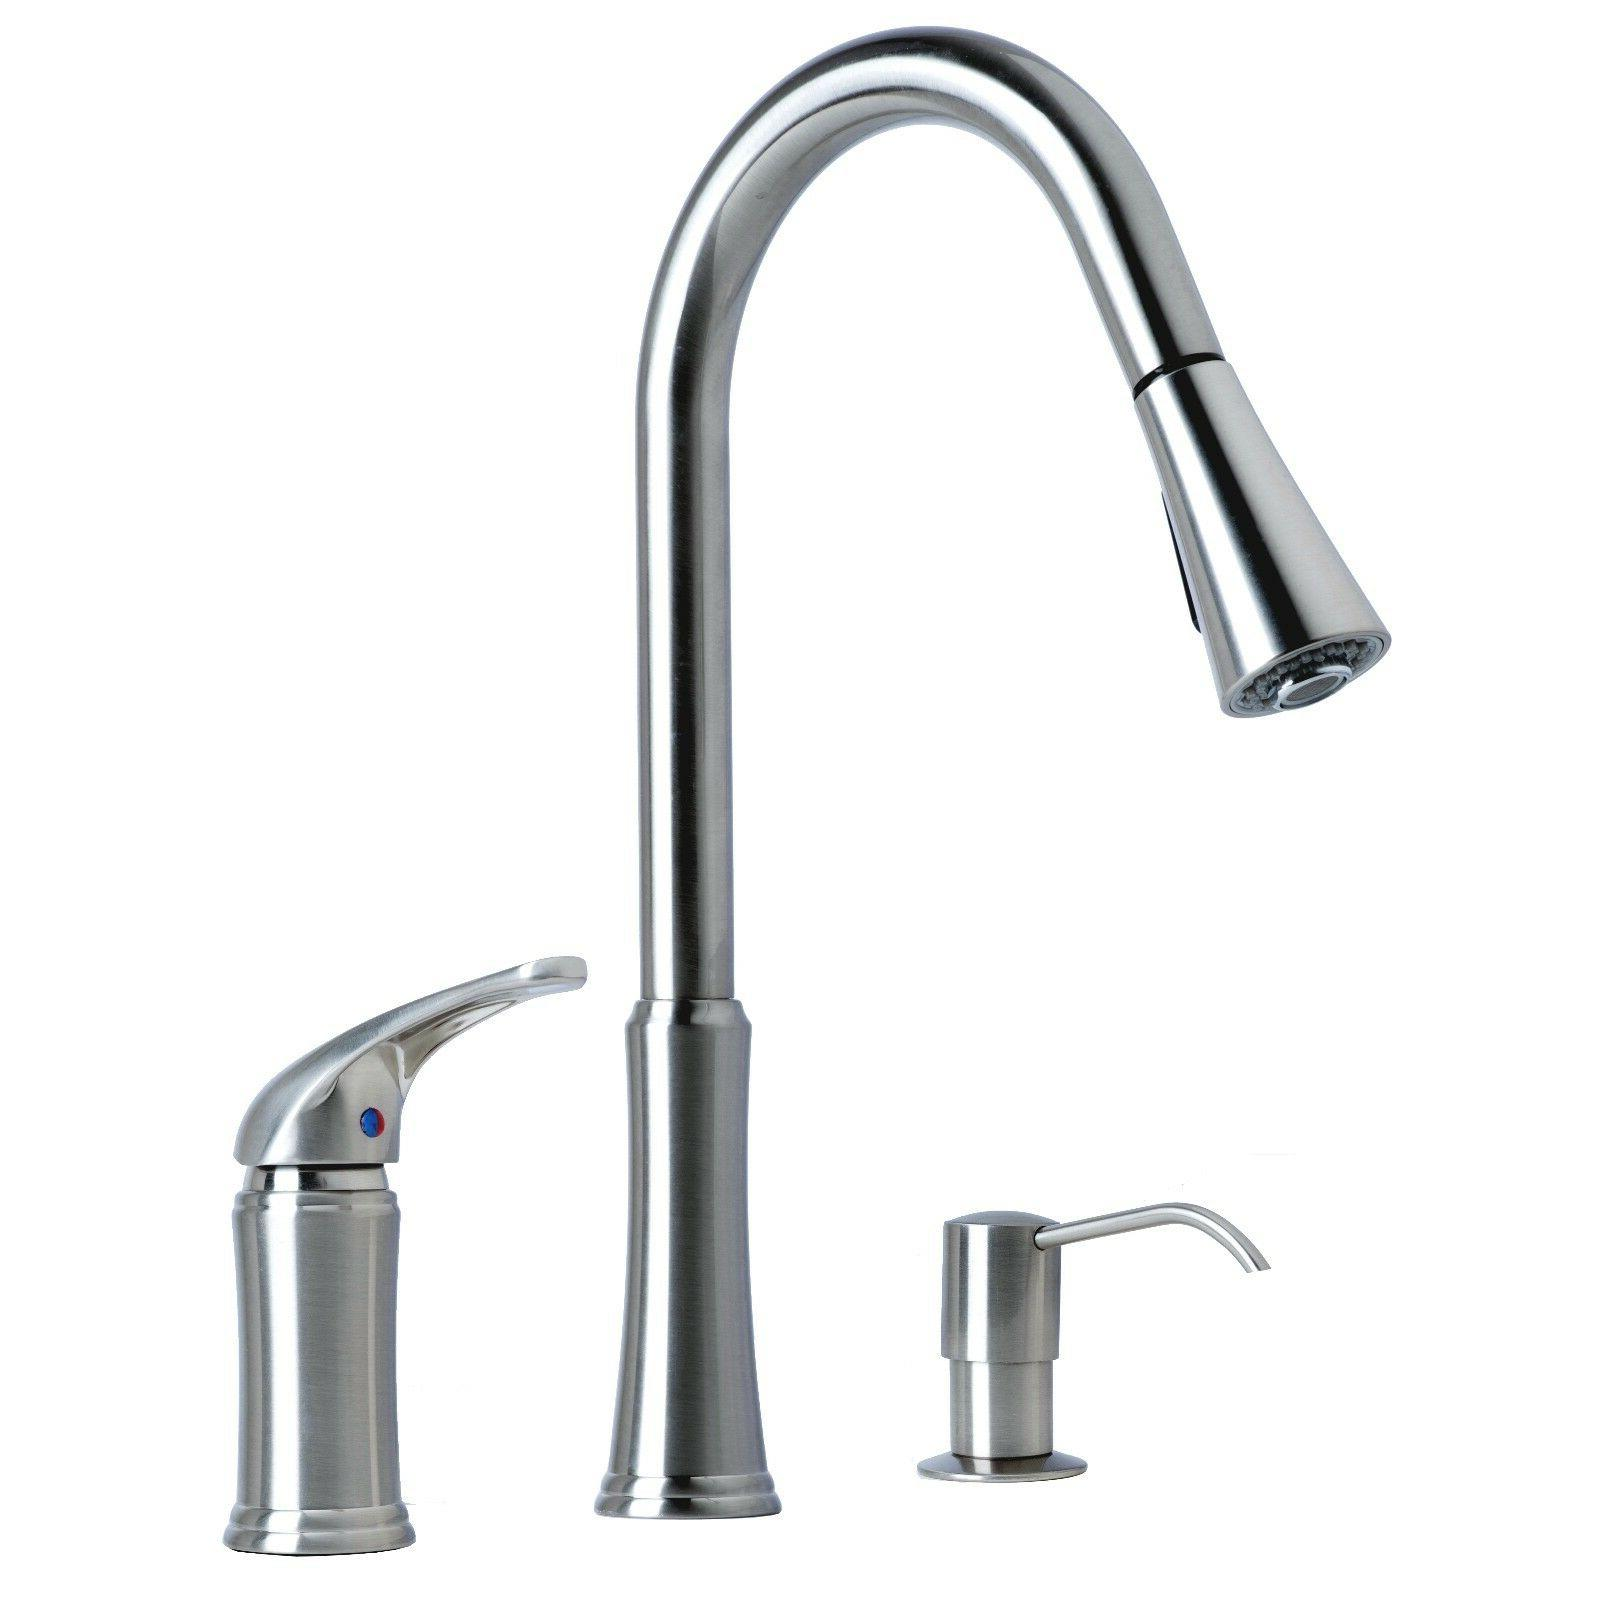 Contemporary Pull-Down Kitchen Faucet with Soap Dispenser St